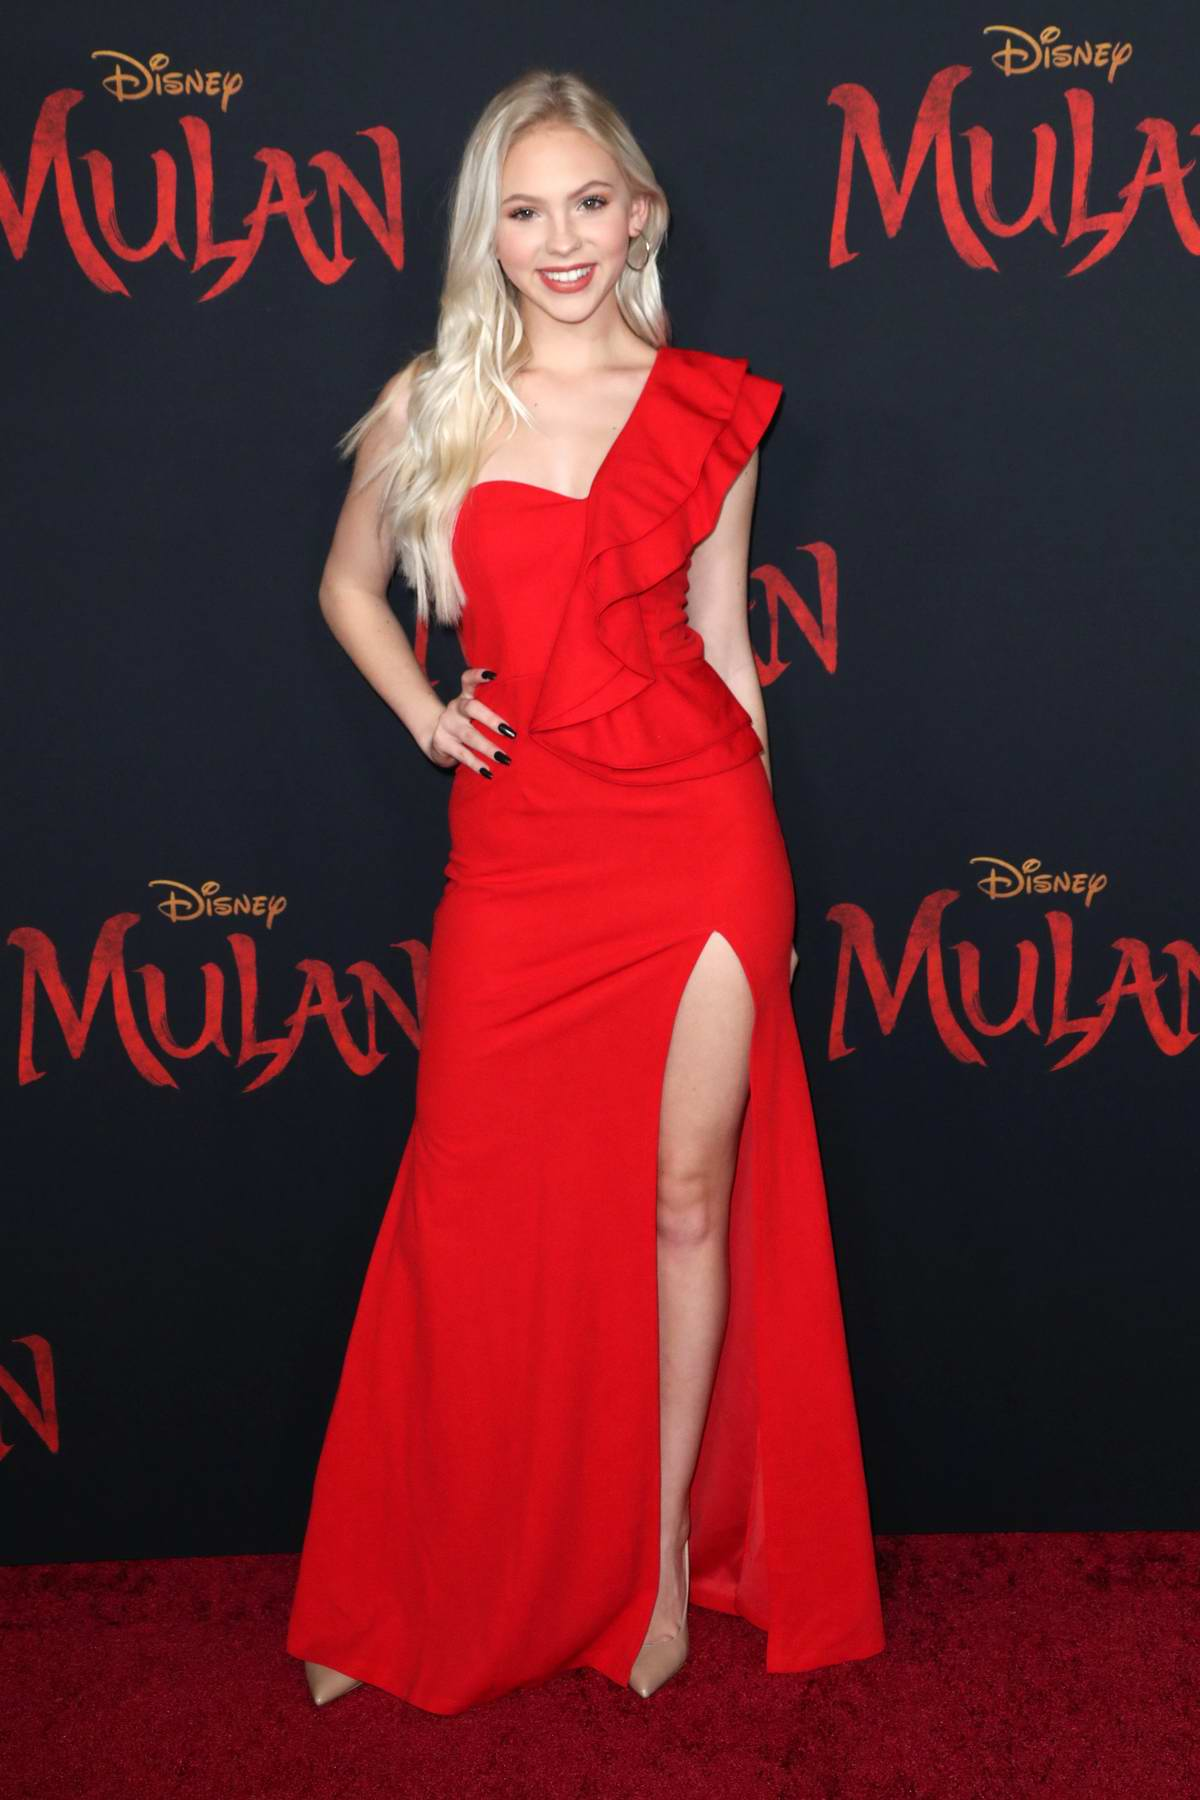 Jordyn Jones attends the Premiere of Disney's 'Mulan' at Dolby Theatre in Los Angeles